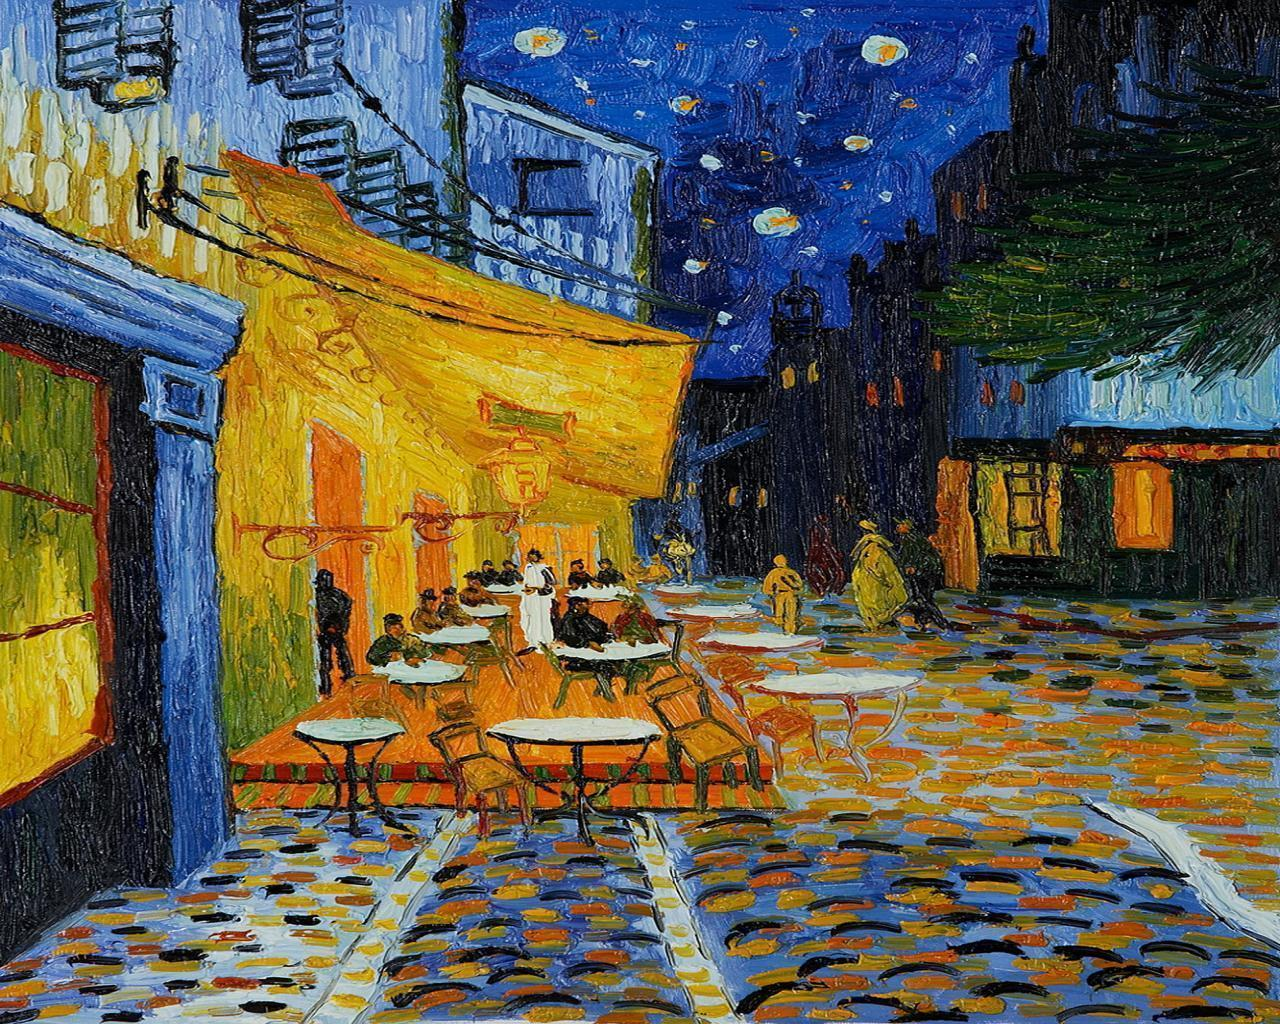 2. Cafe Terrace at Night